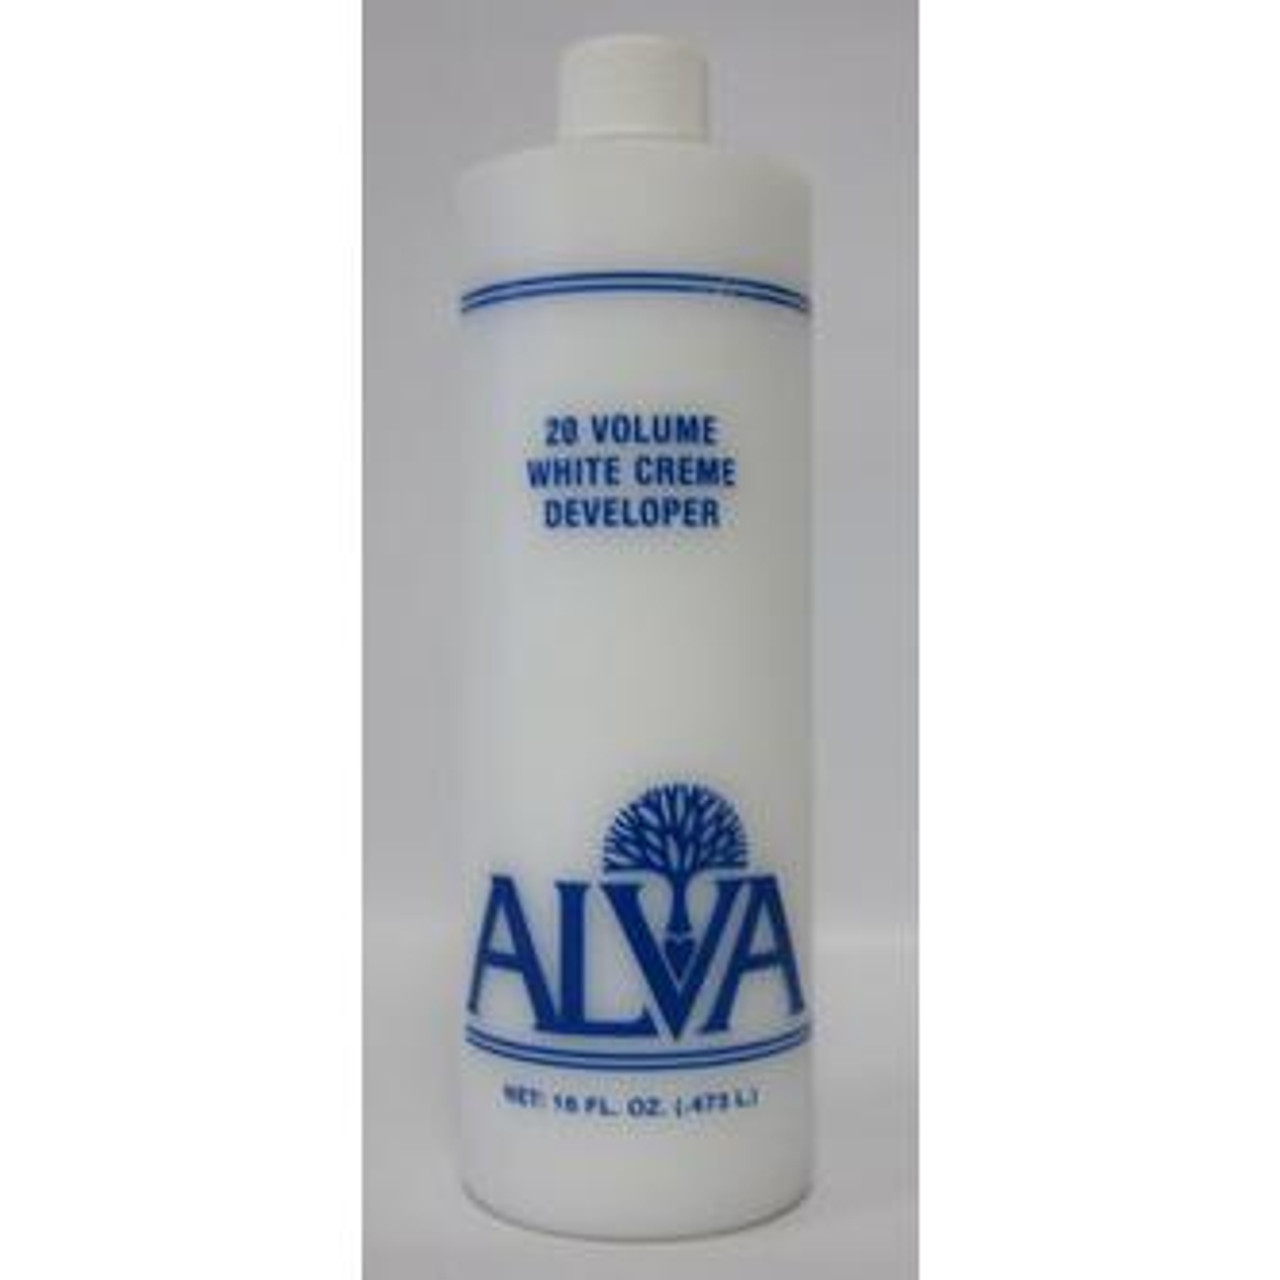 20 Volume Creme Develope 16 Oz